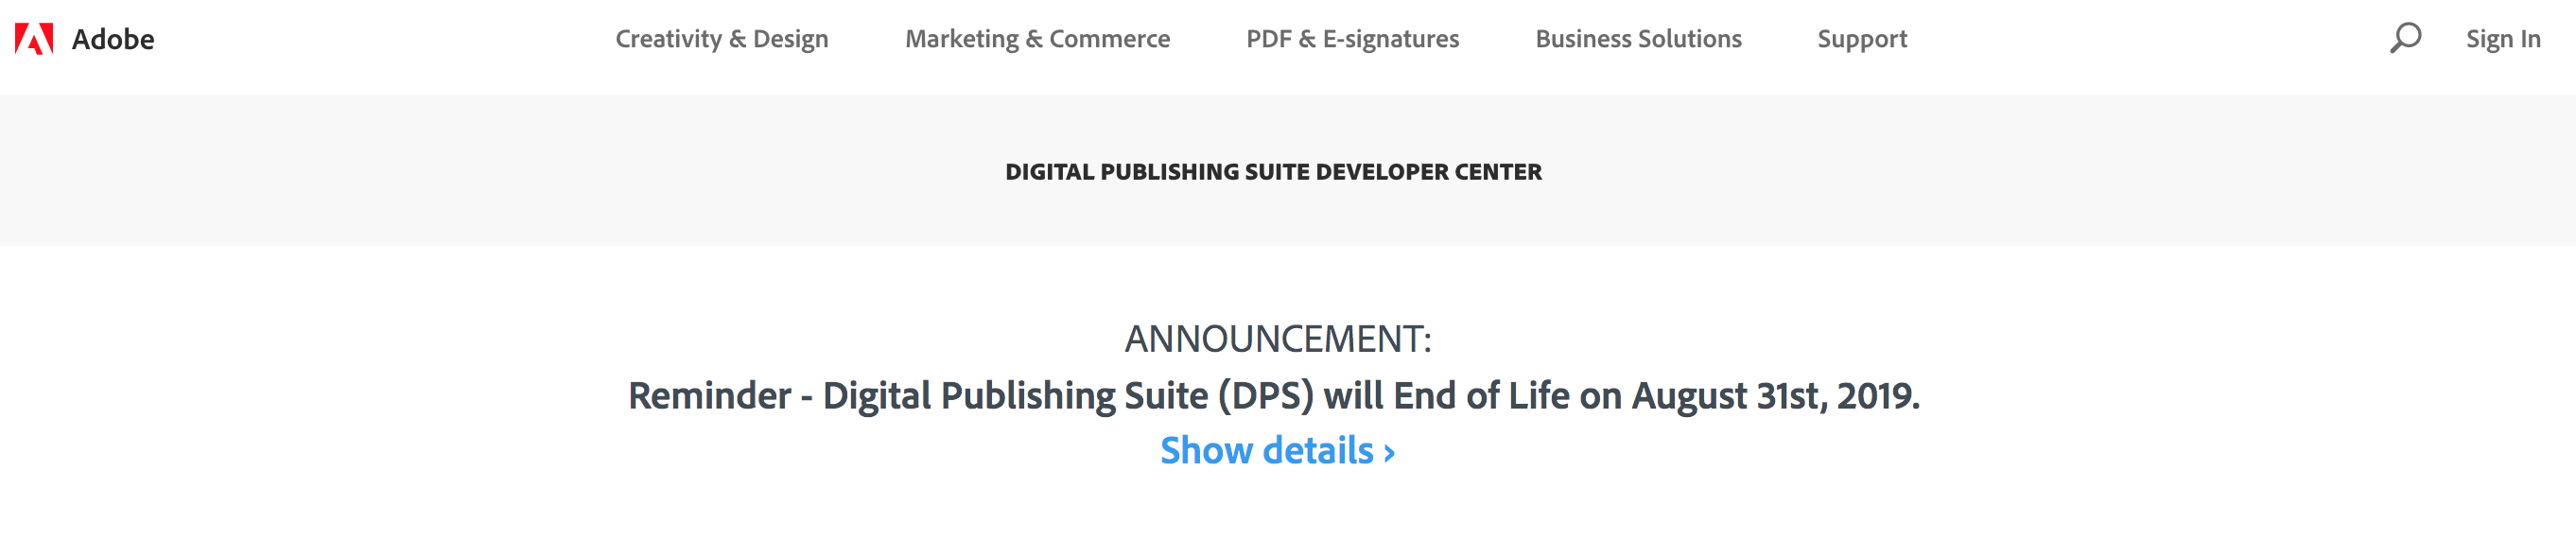 Adobe DPS Publishing Suite will End of Life End of 2019